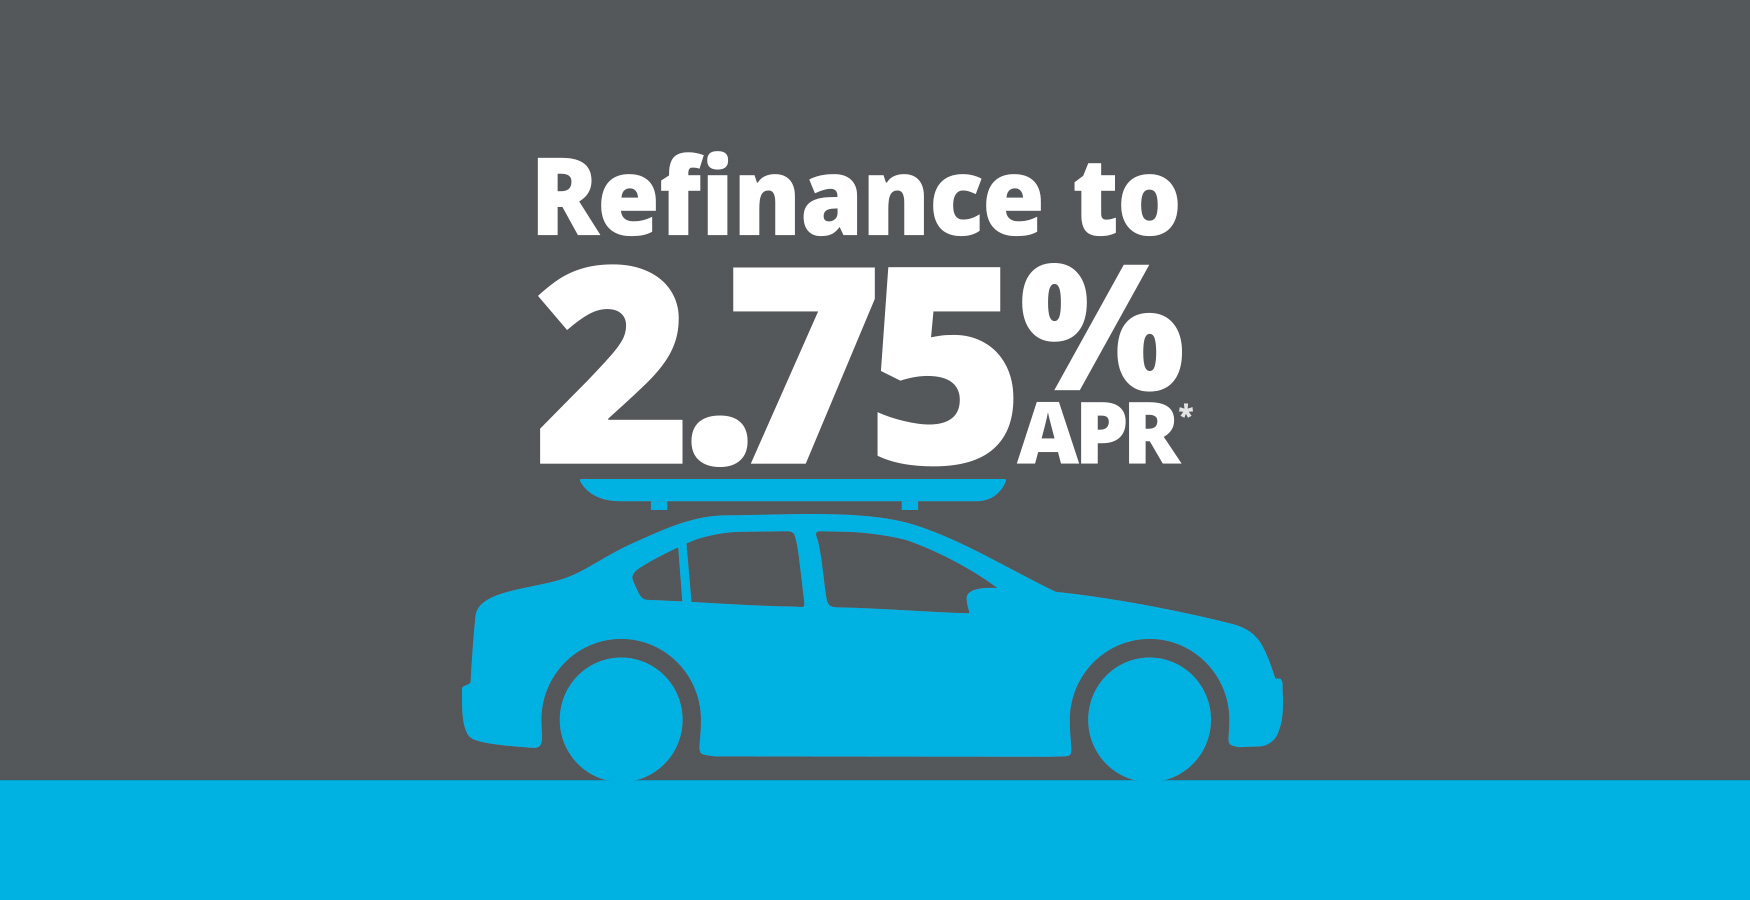 Refinance your auto loan to 2.75% APR